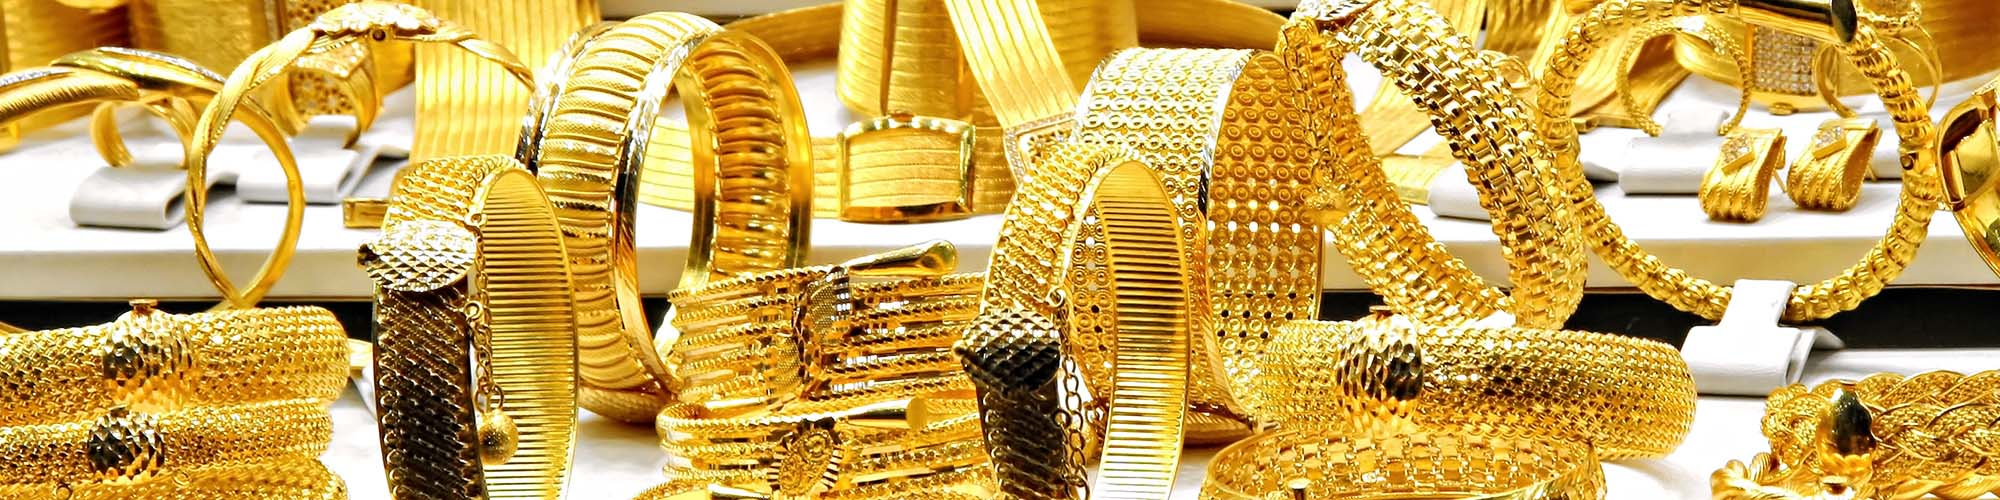 Gold jewelry and pawn shop services in Indianapolis, IN.